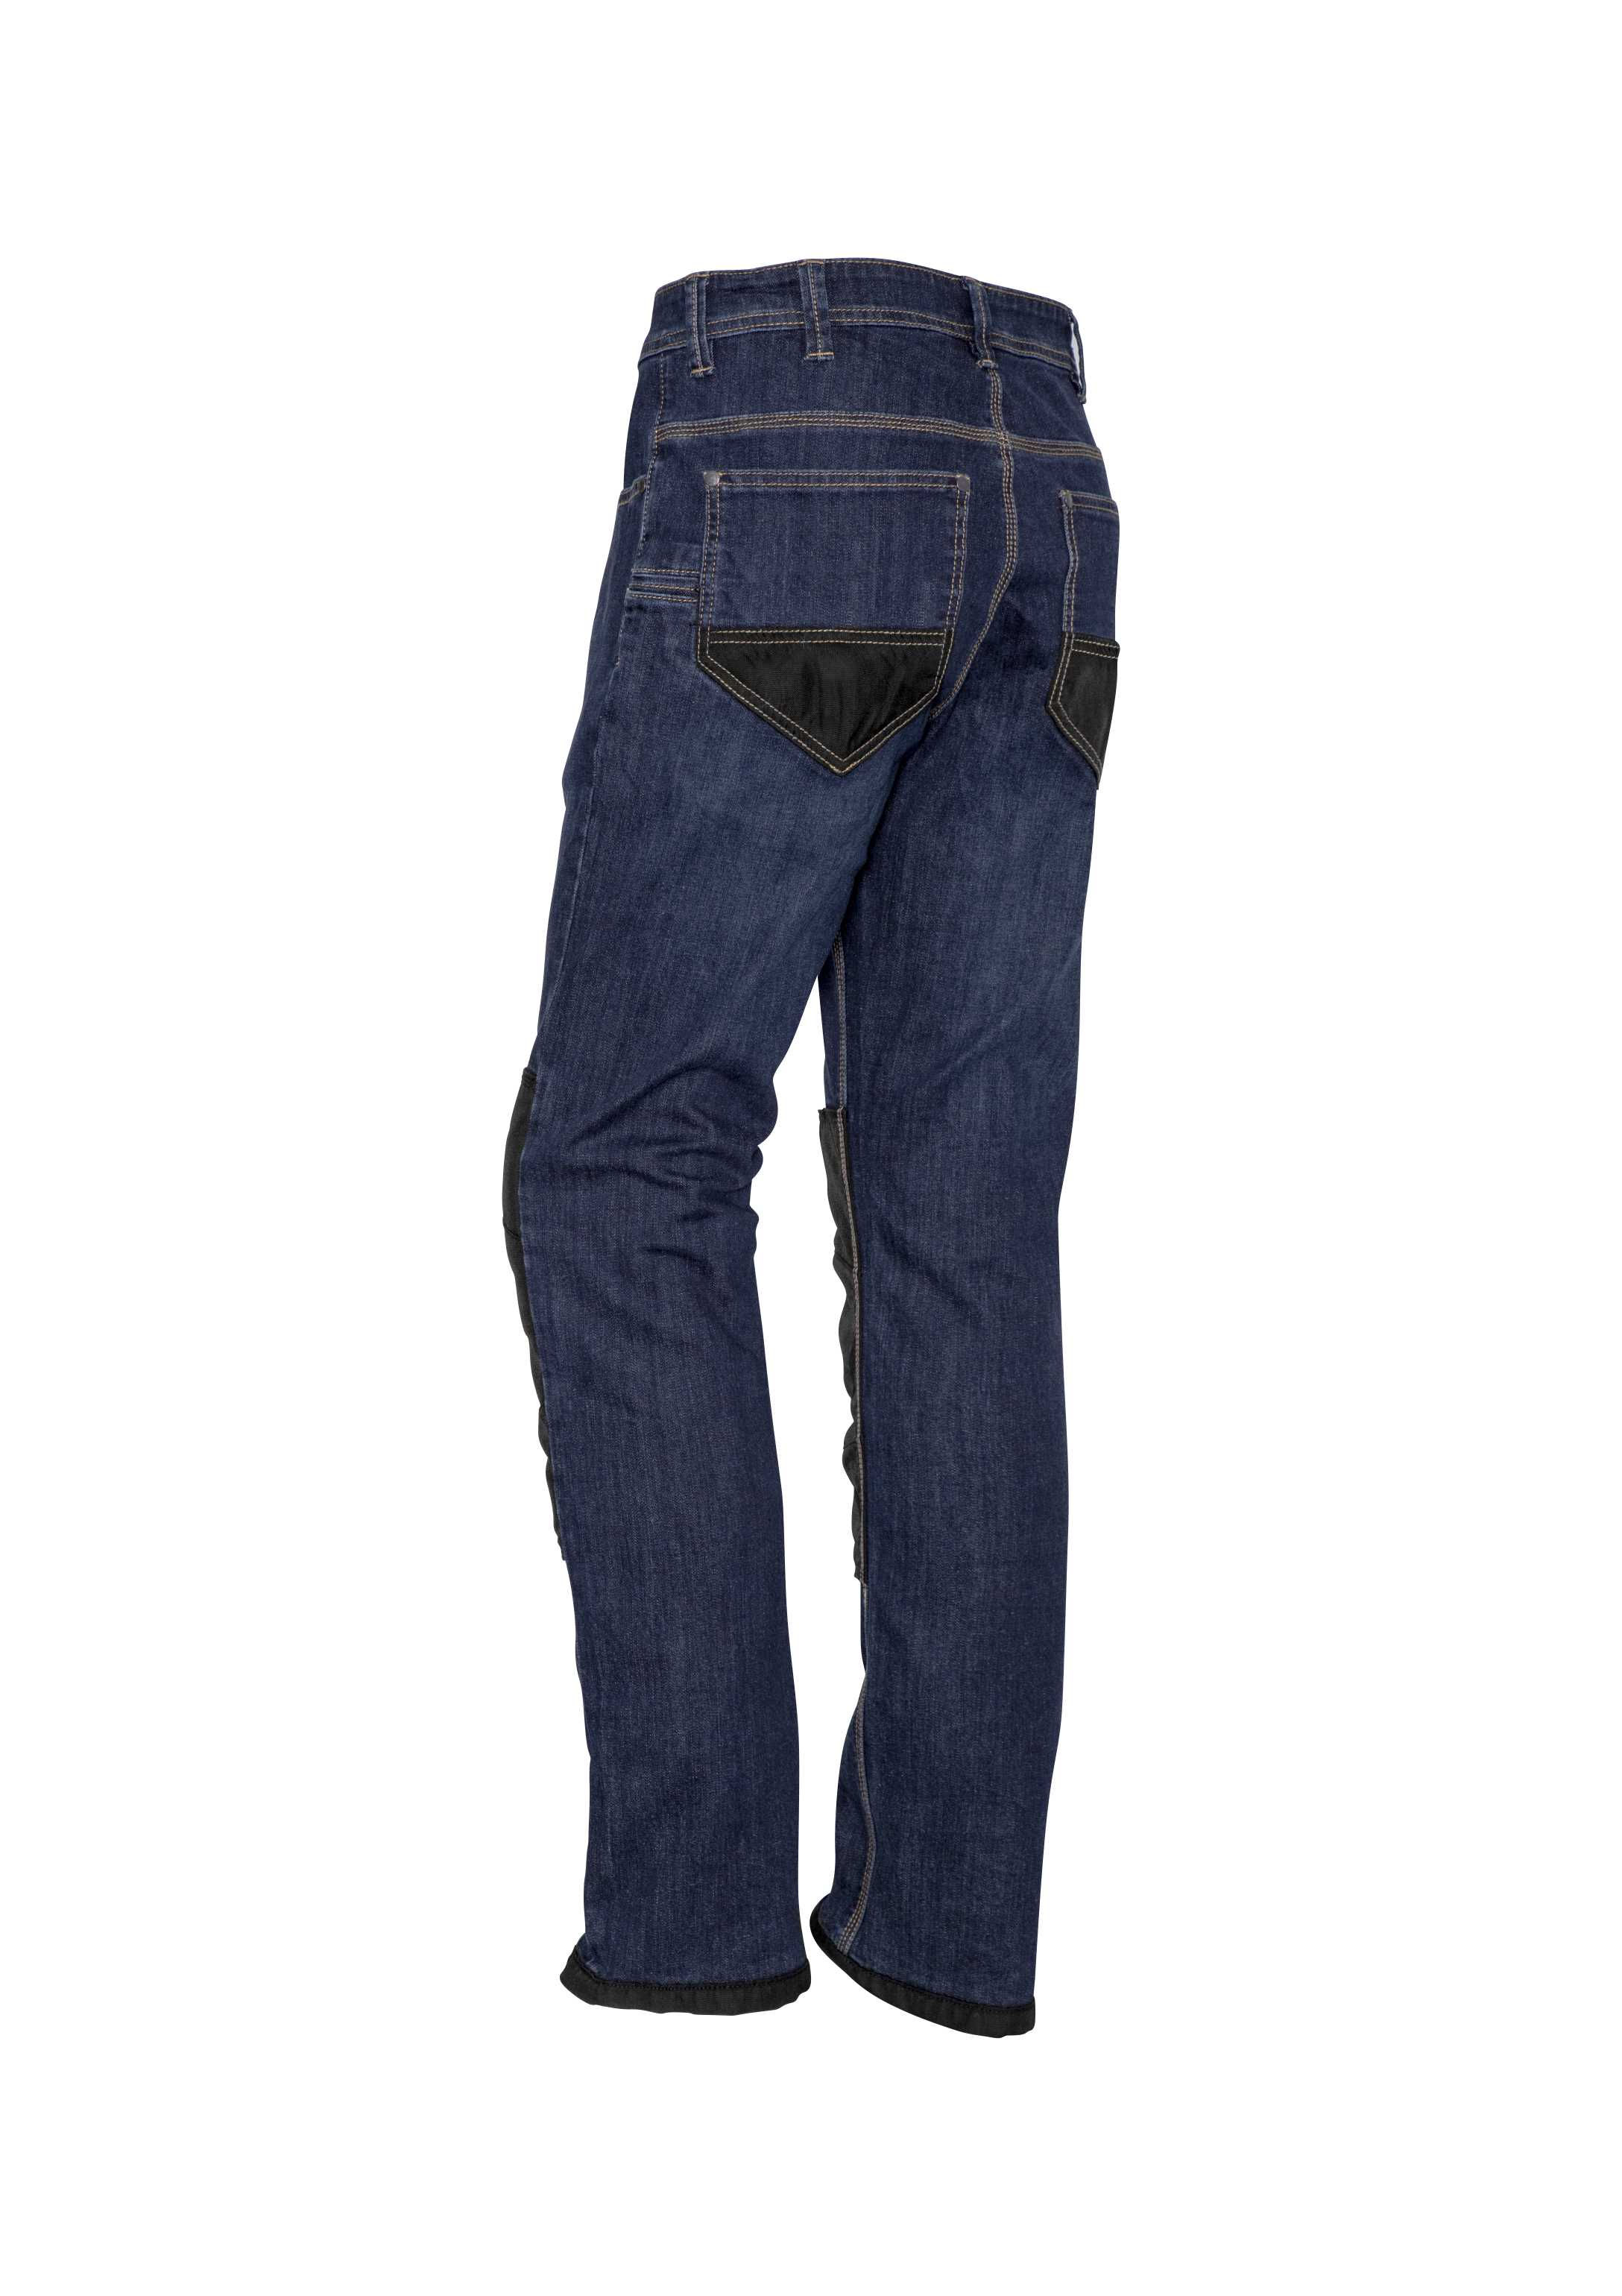 ZP508_Denim_BackSide